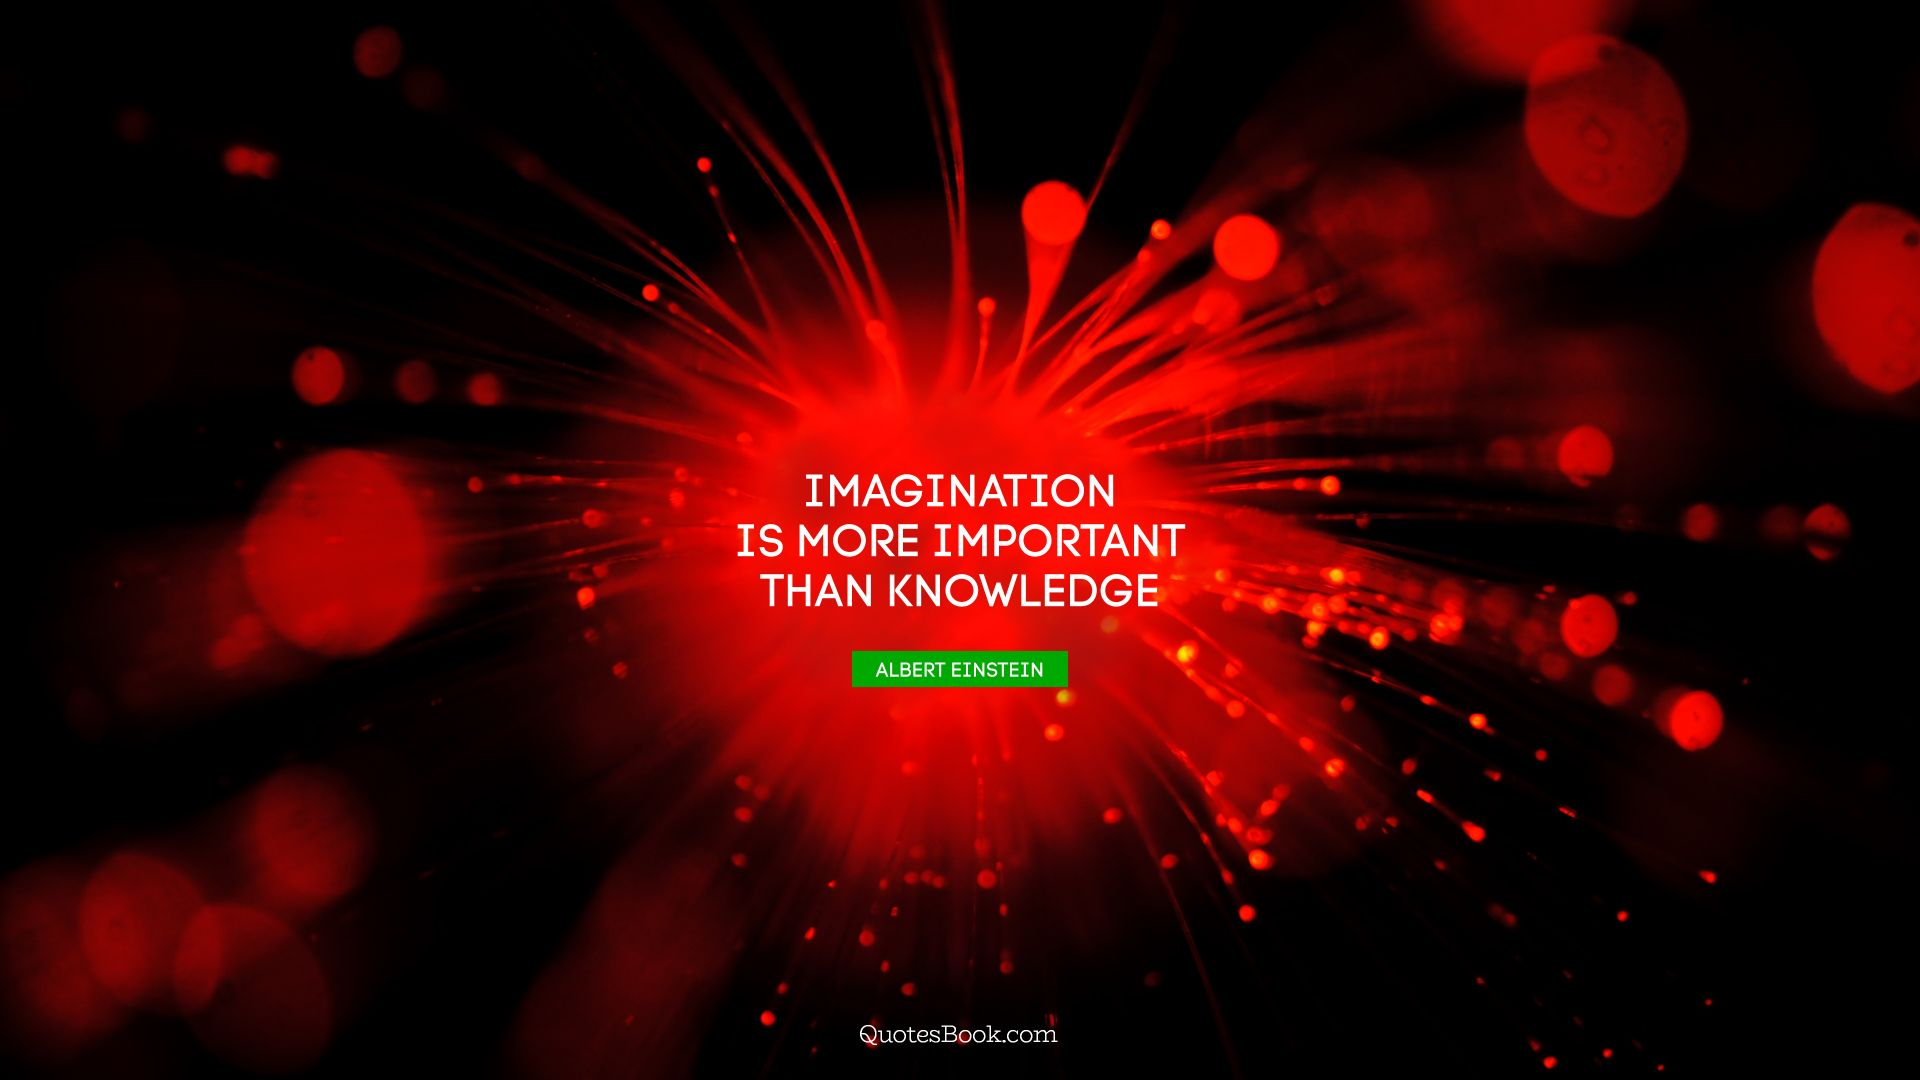 Imagination is more important than knowledge  - Quote by